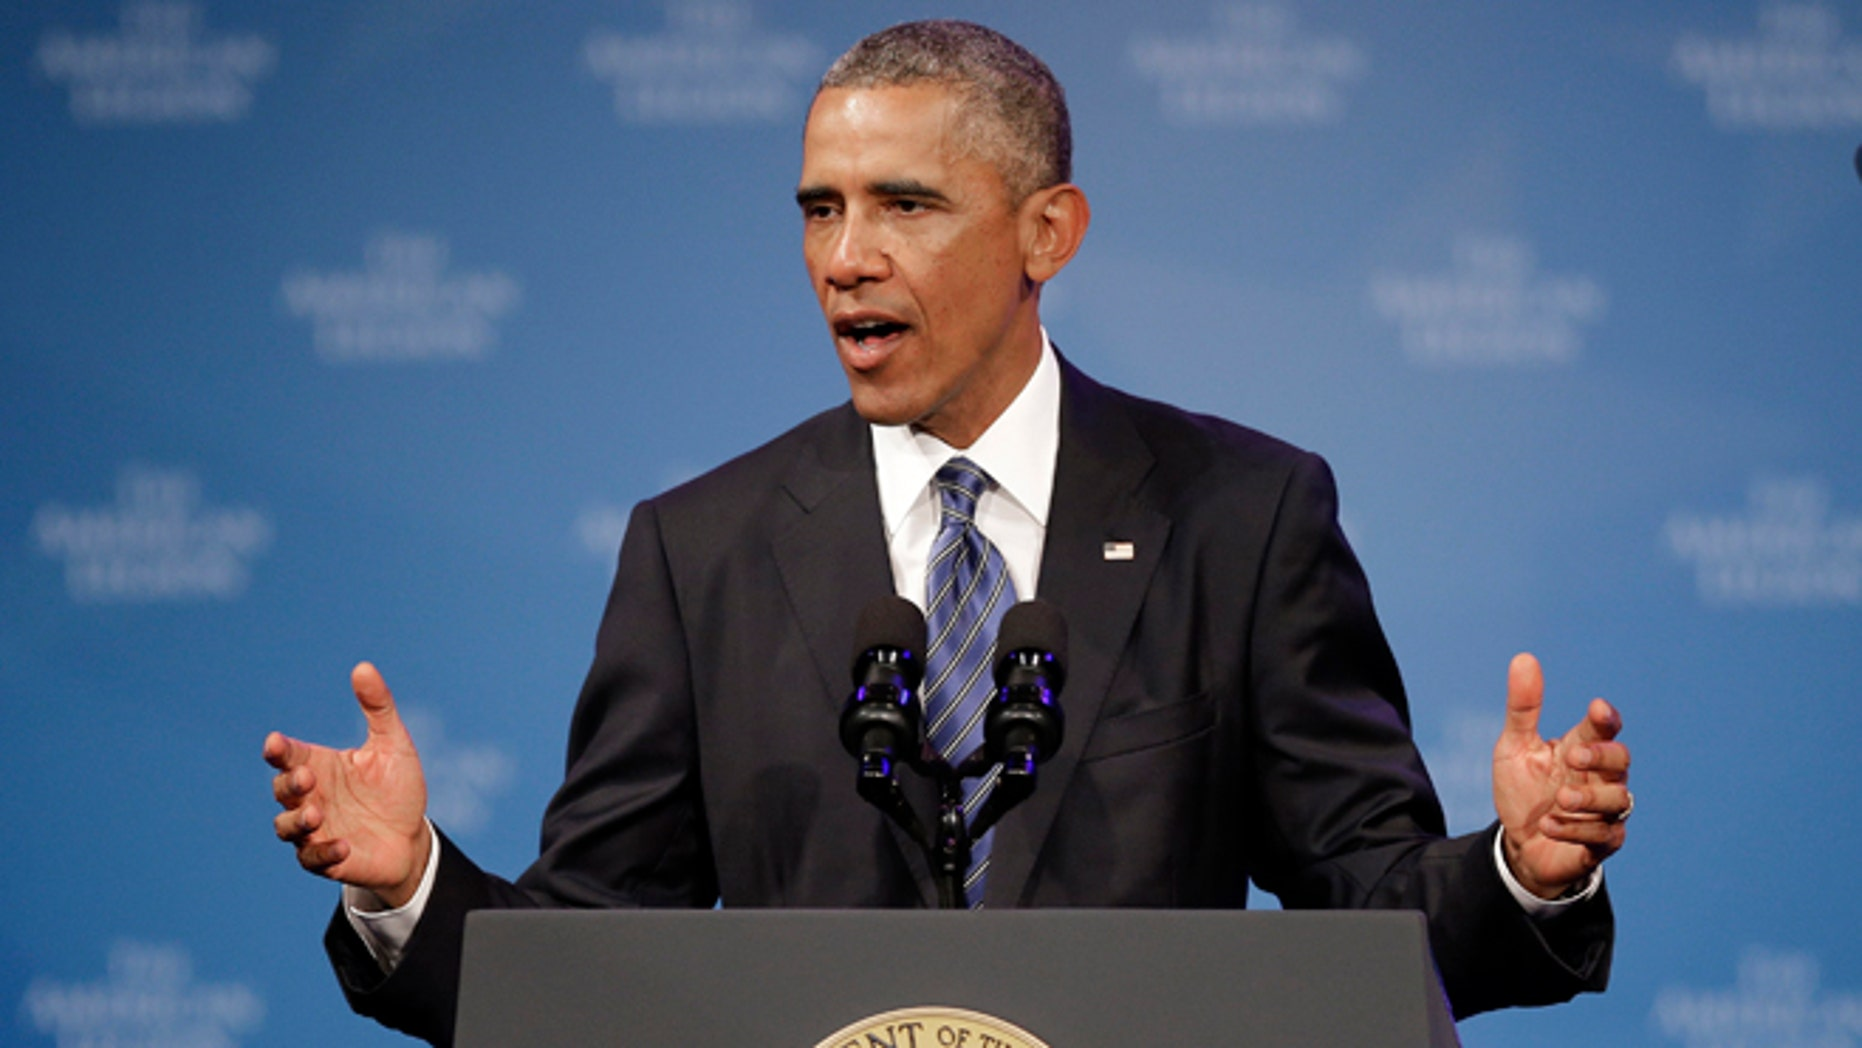 President Barack Obama speaks during the American Legion national convention in Charlotte, N.C., Tuesday, Aug. 26, 2014.